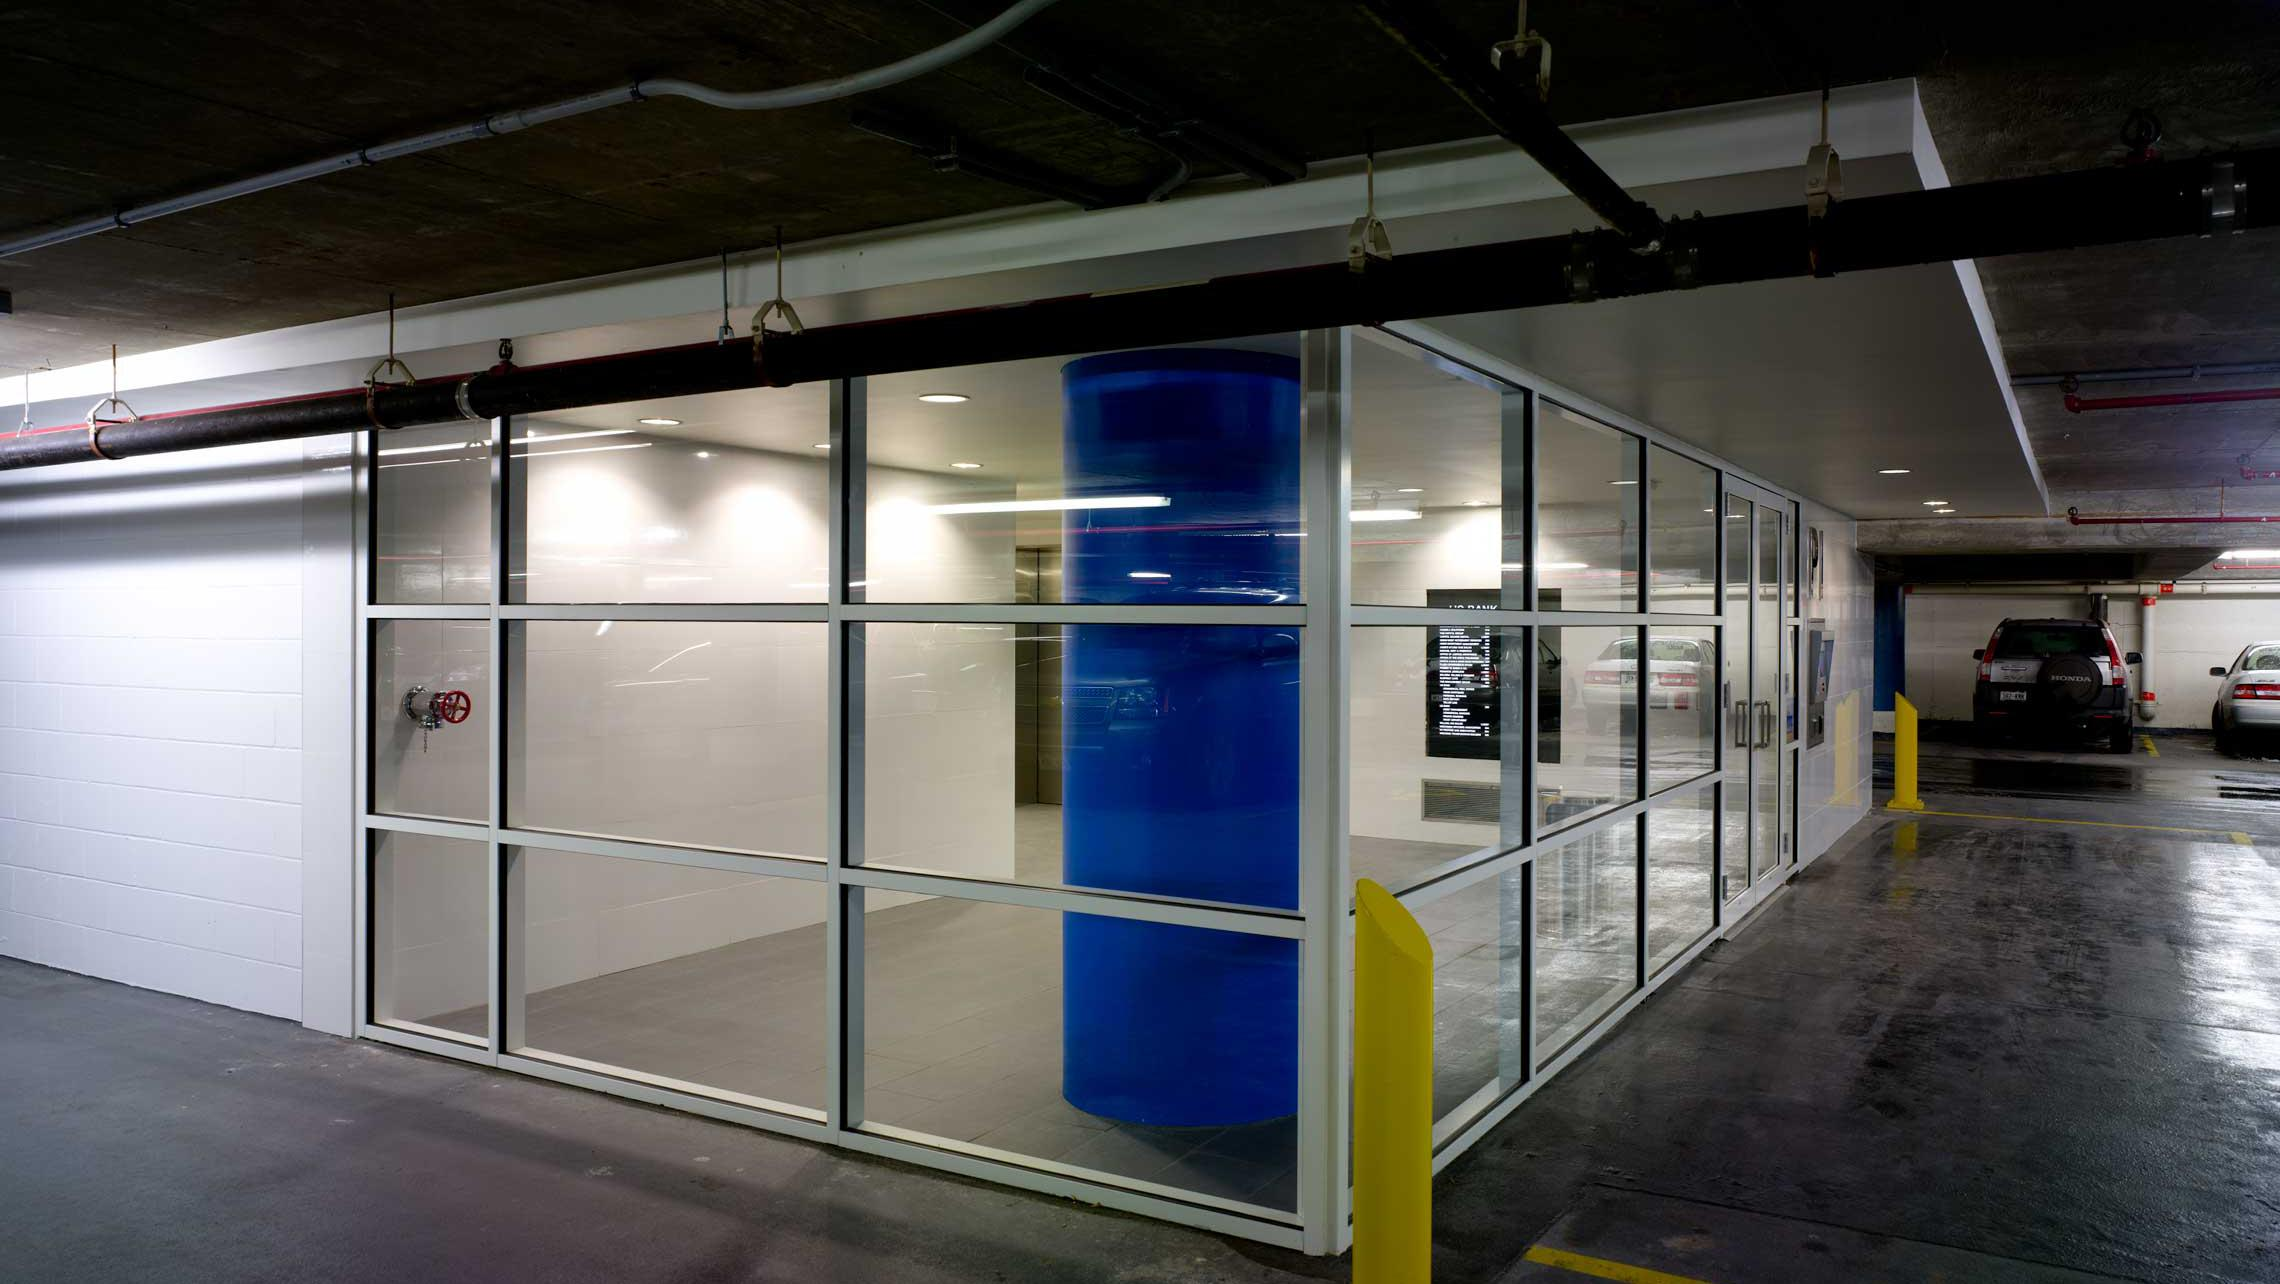 ULI US Bank Plaza Parking Ramp Vestibule